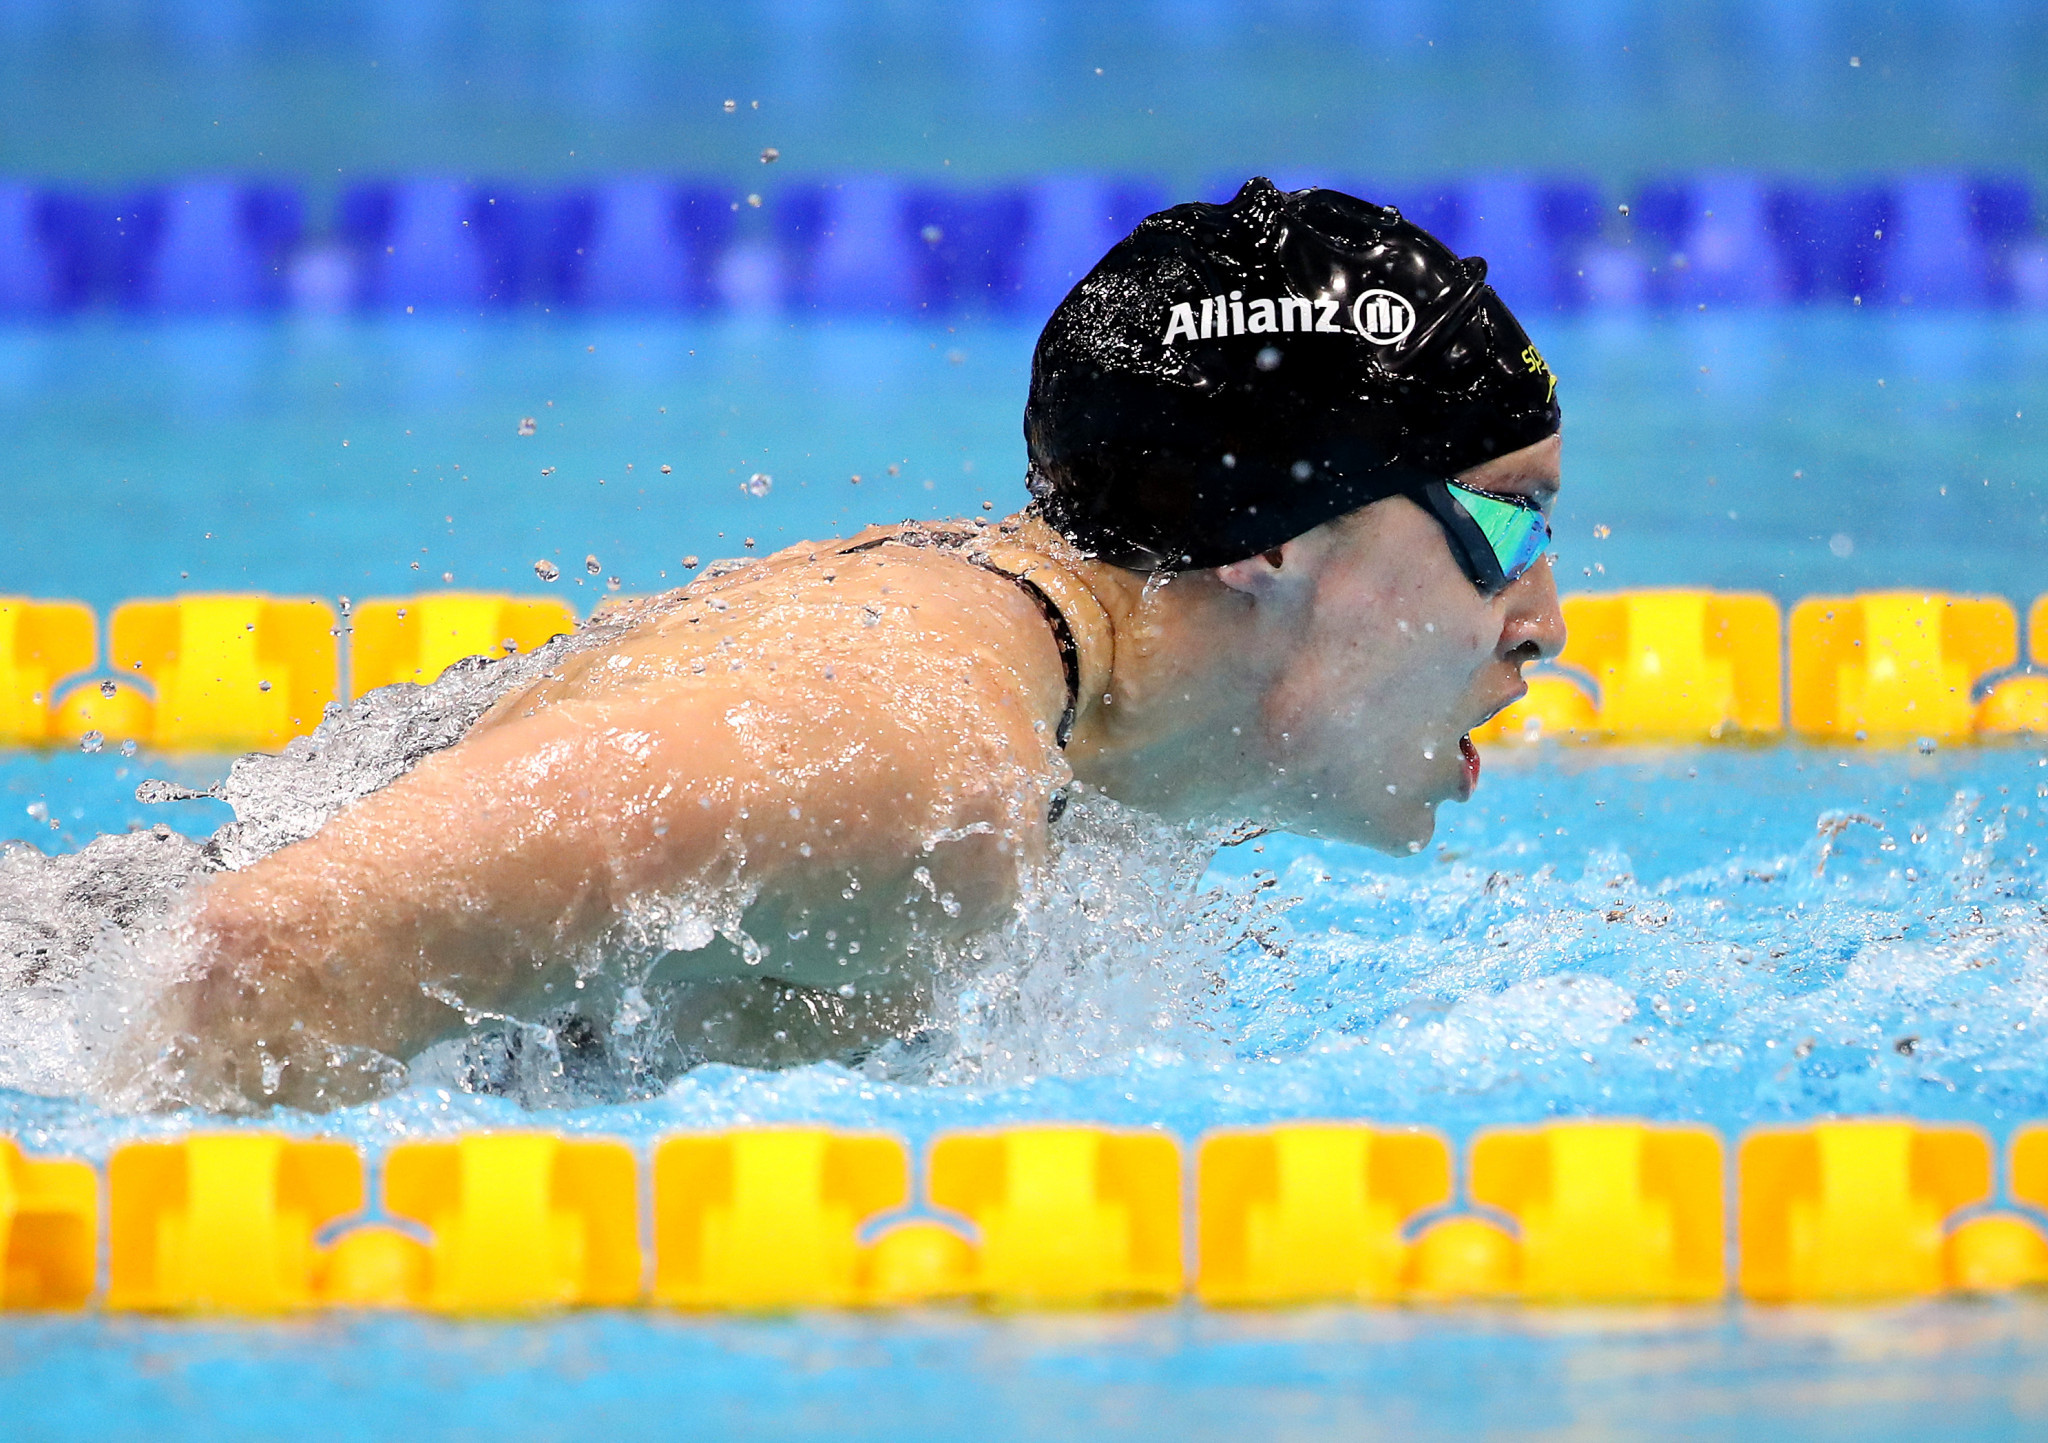 New Zealand's Sophie Pascoe took the narrowest win of the day with just two points separating her and her rival, Australia's Tiffany Thomas Kane, at the World Para Swimming Series in Melbourne ©Getty Images